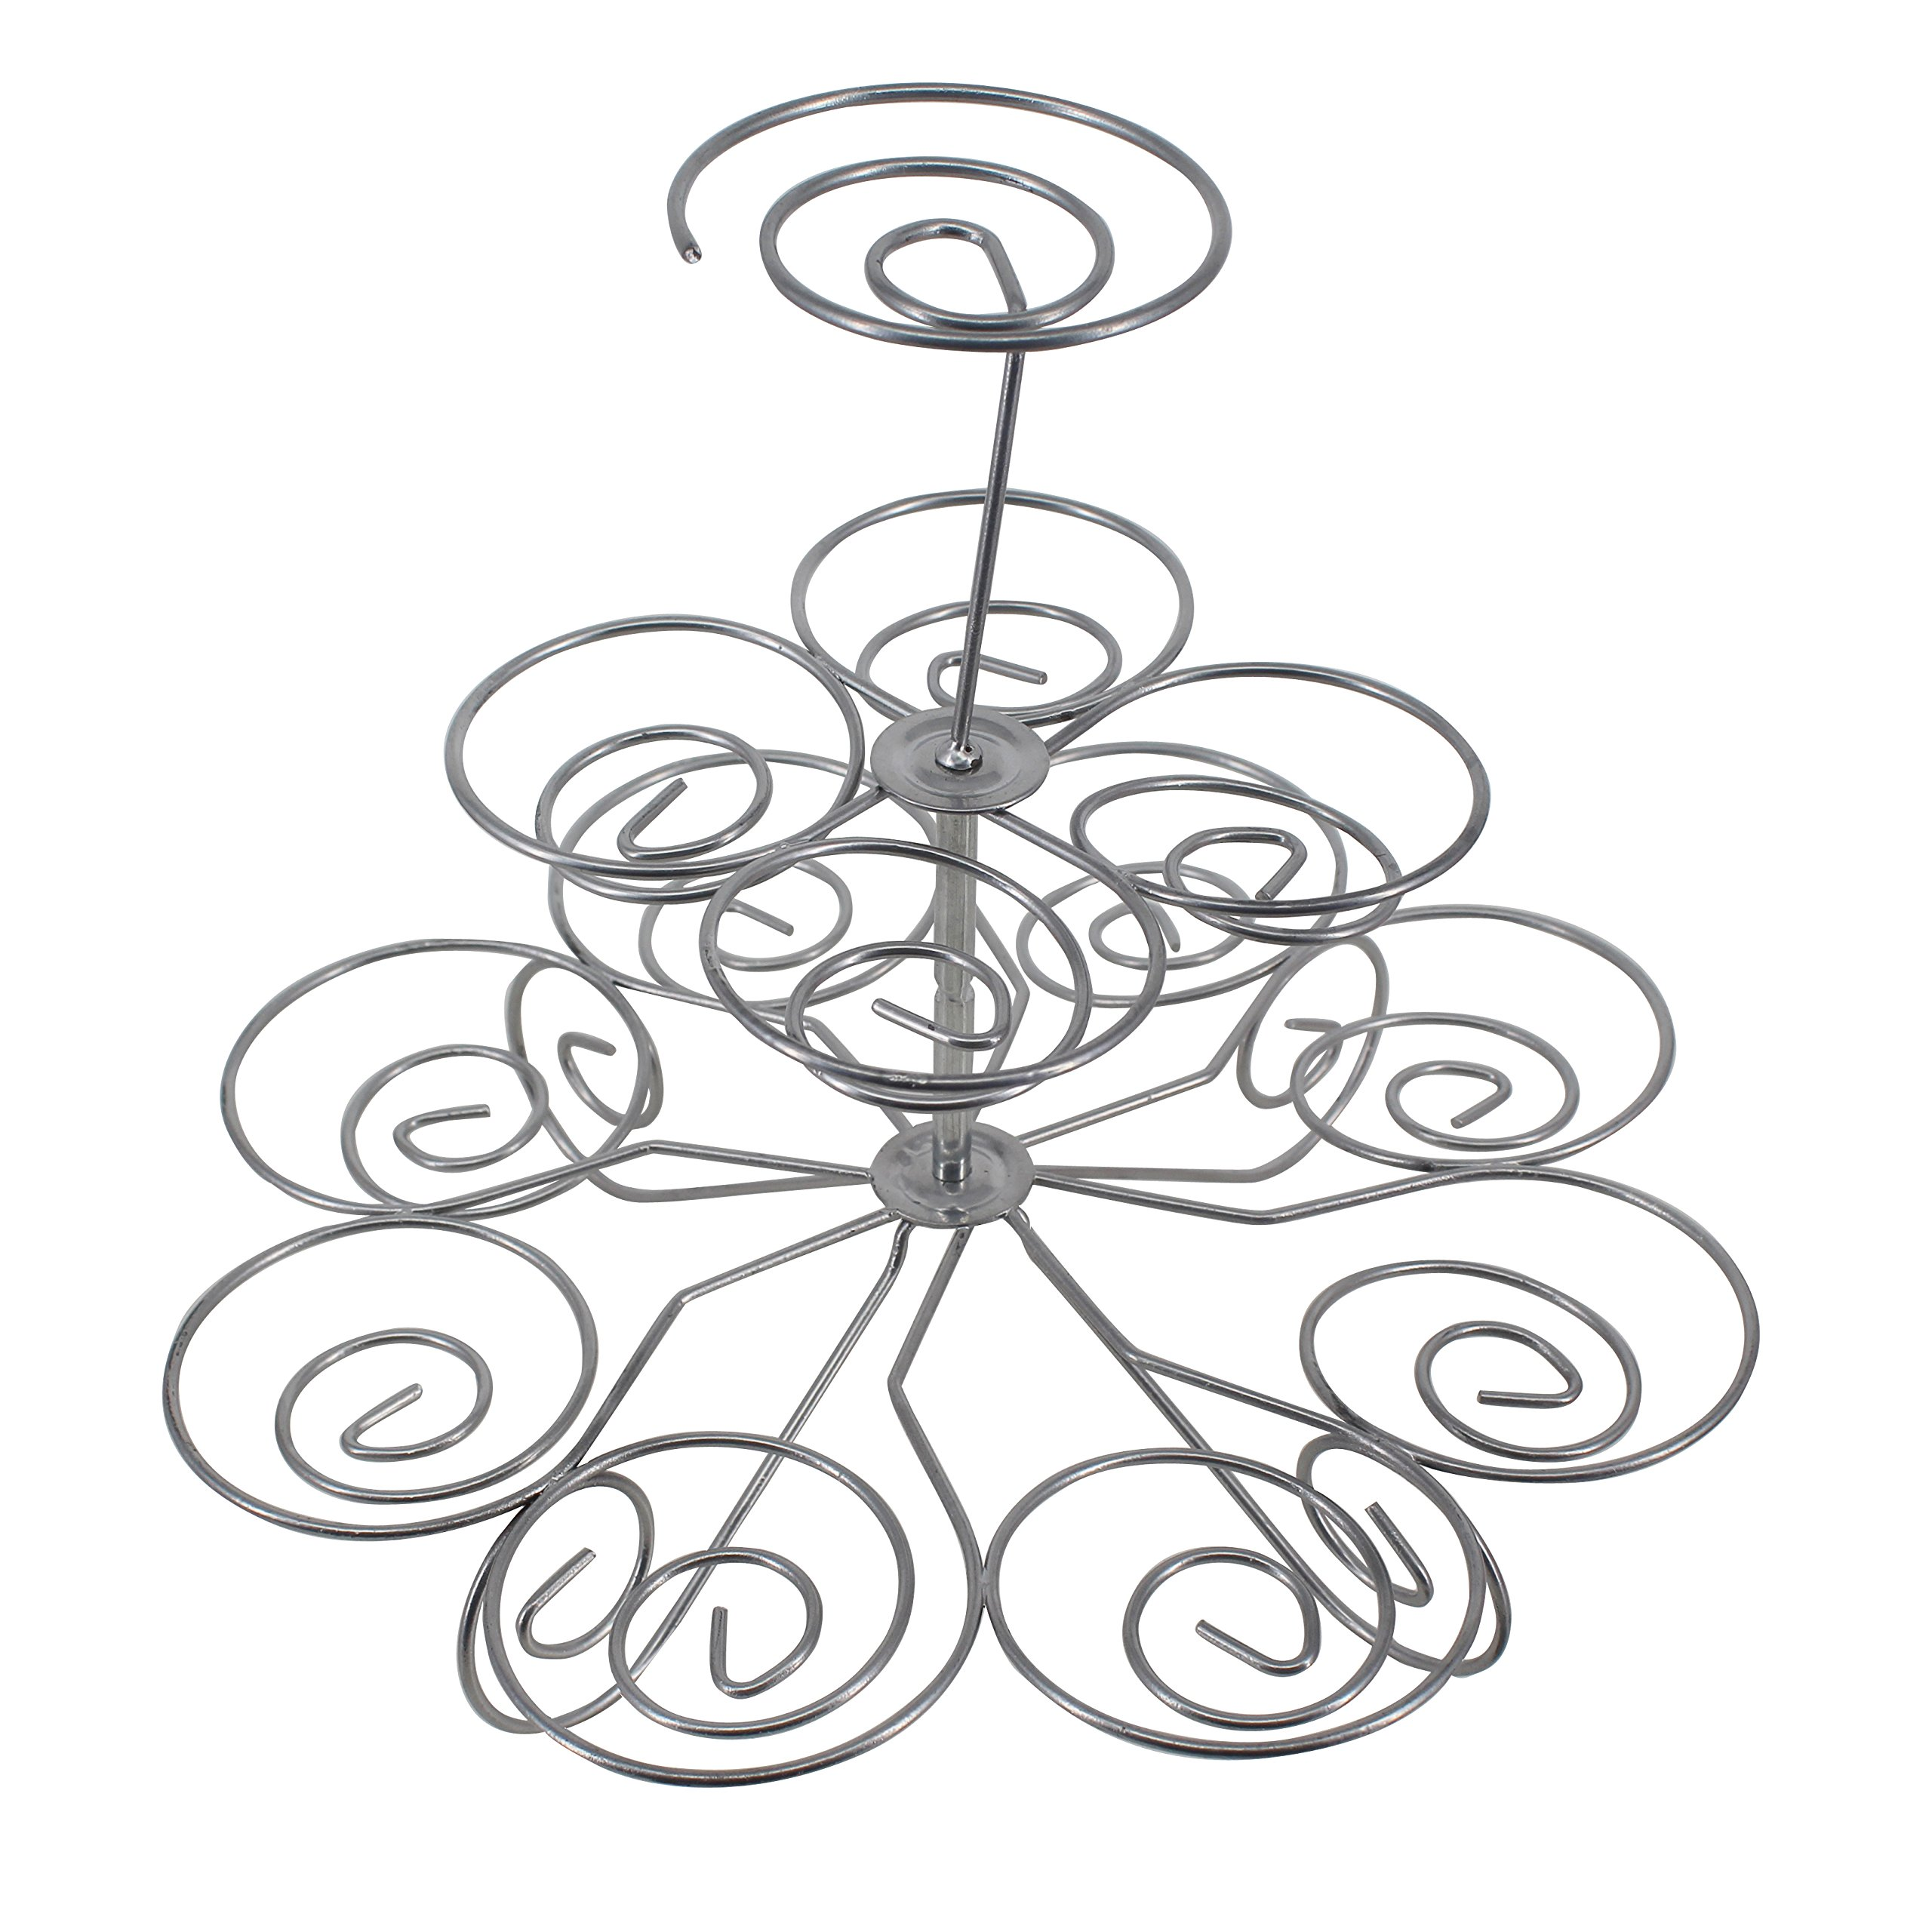 Greatflower Metal Cupcake Stand can hold 13 pcs cupcakes for birthday wedding party,3 layers